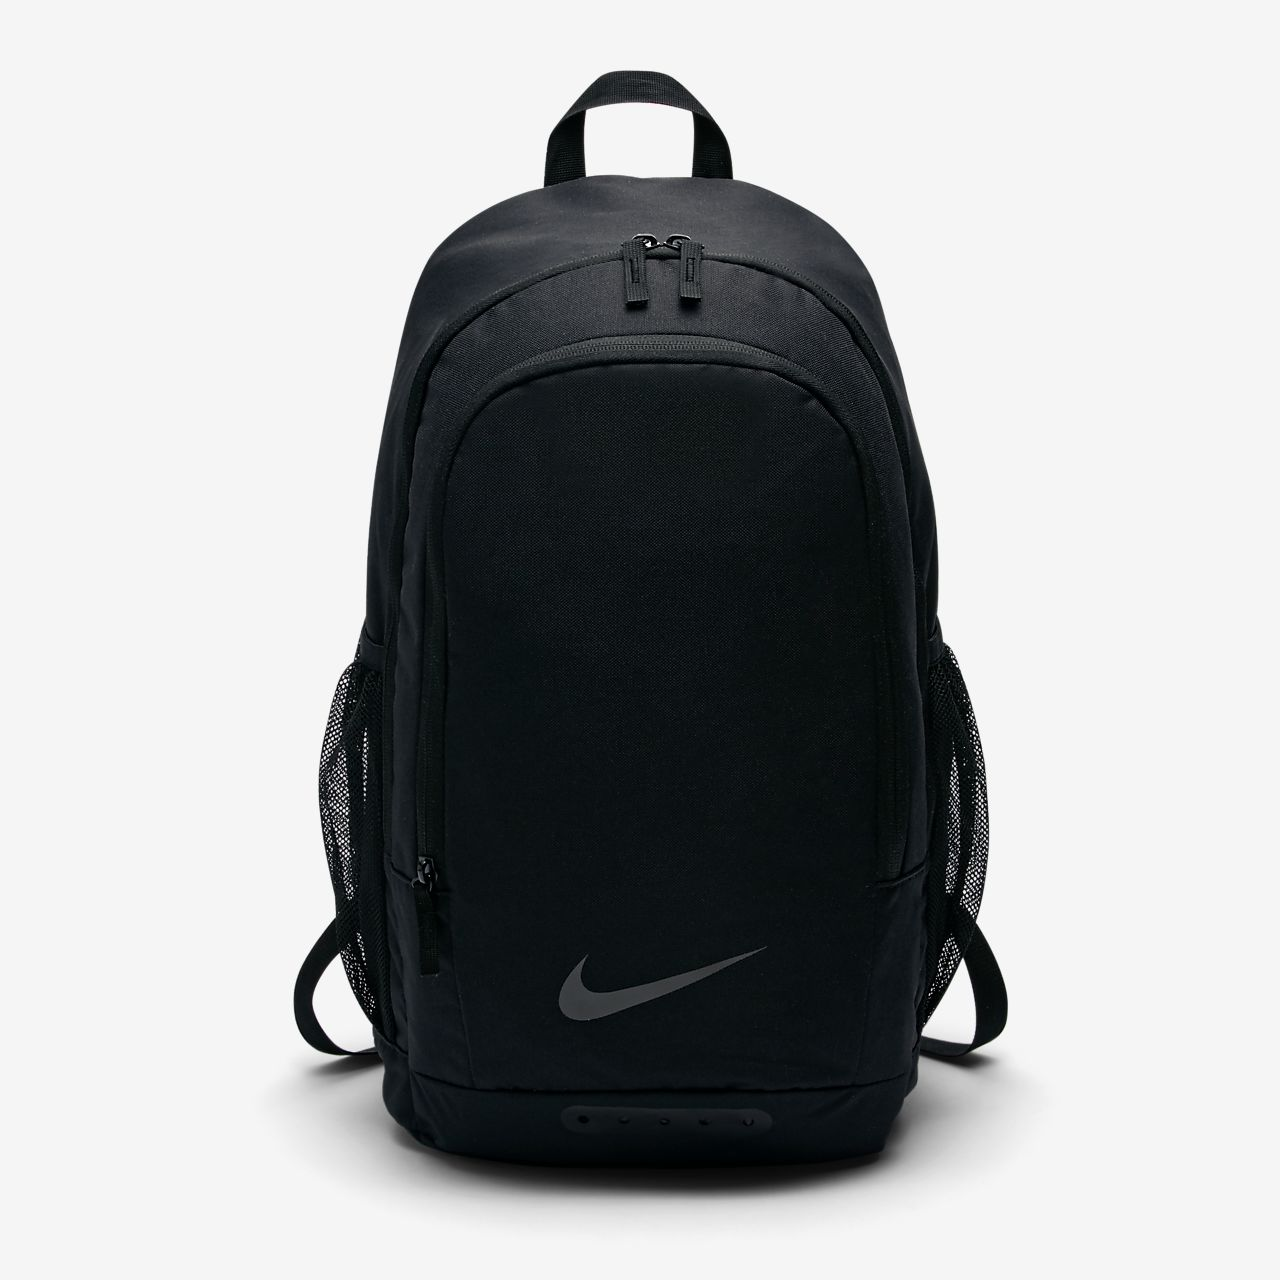 7d8ea8f877af Low Resolution Nike Academy Football Backpack Nike Academy Football Backpack